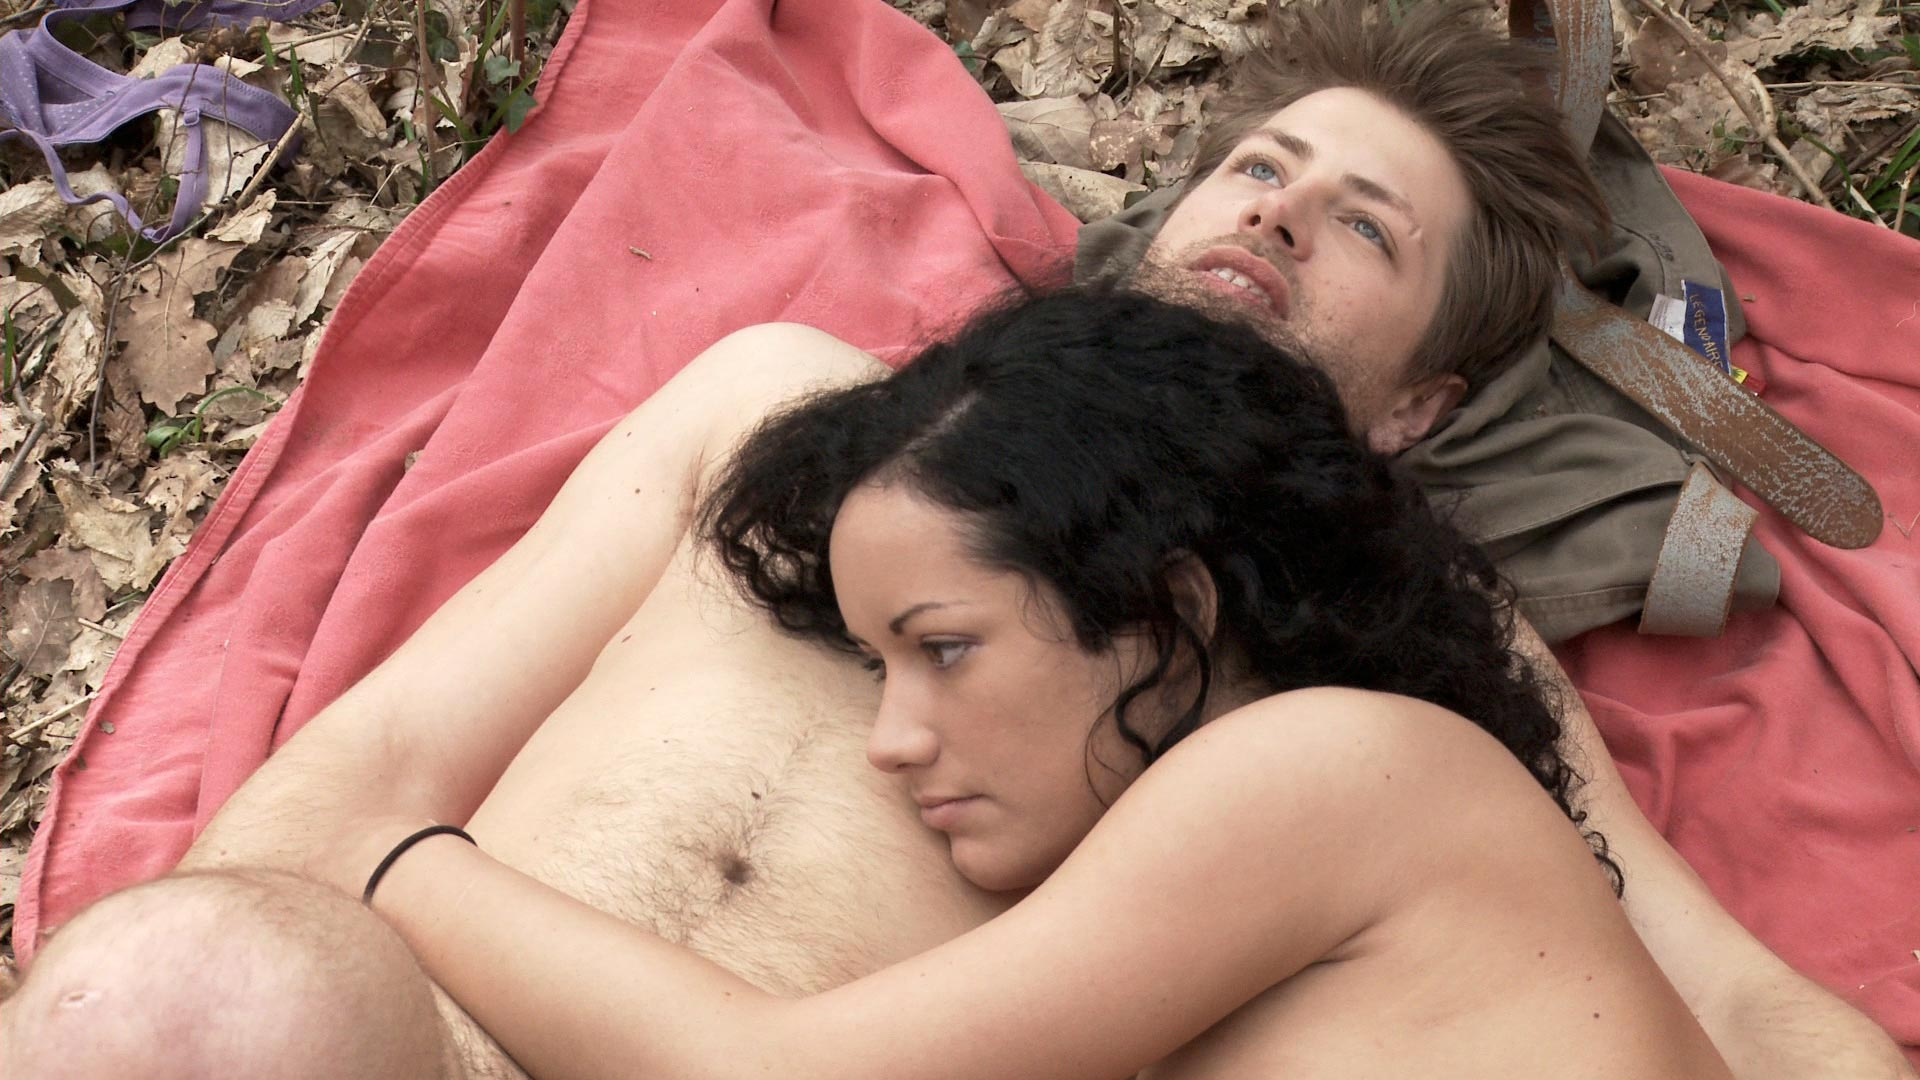 Valerie maes sexual chronicles of a french 2012 - 1 part 4